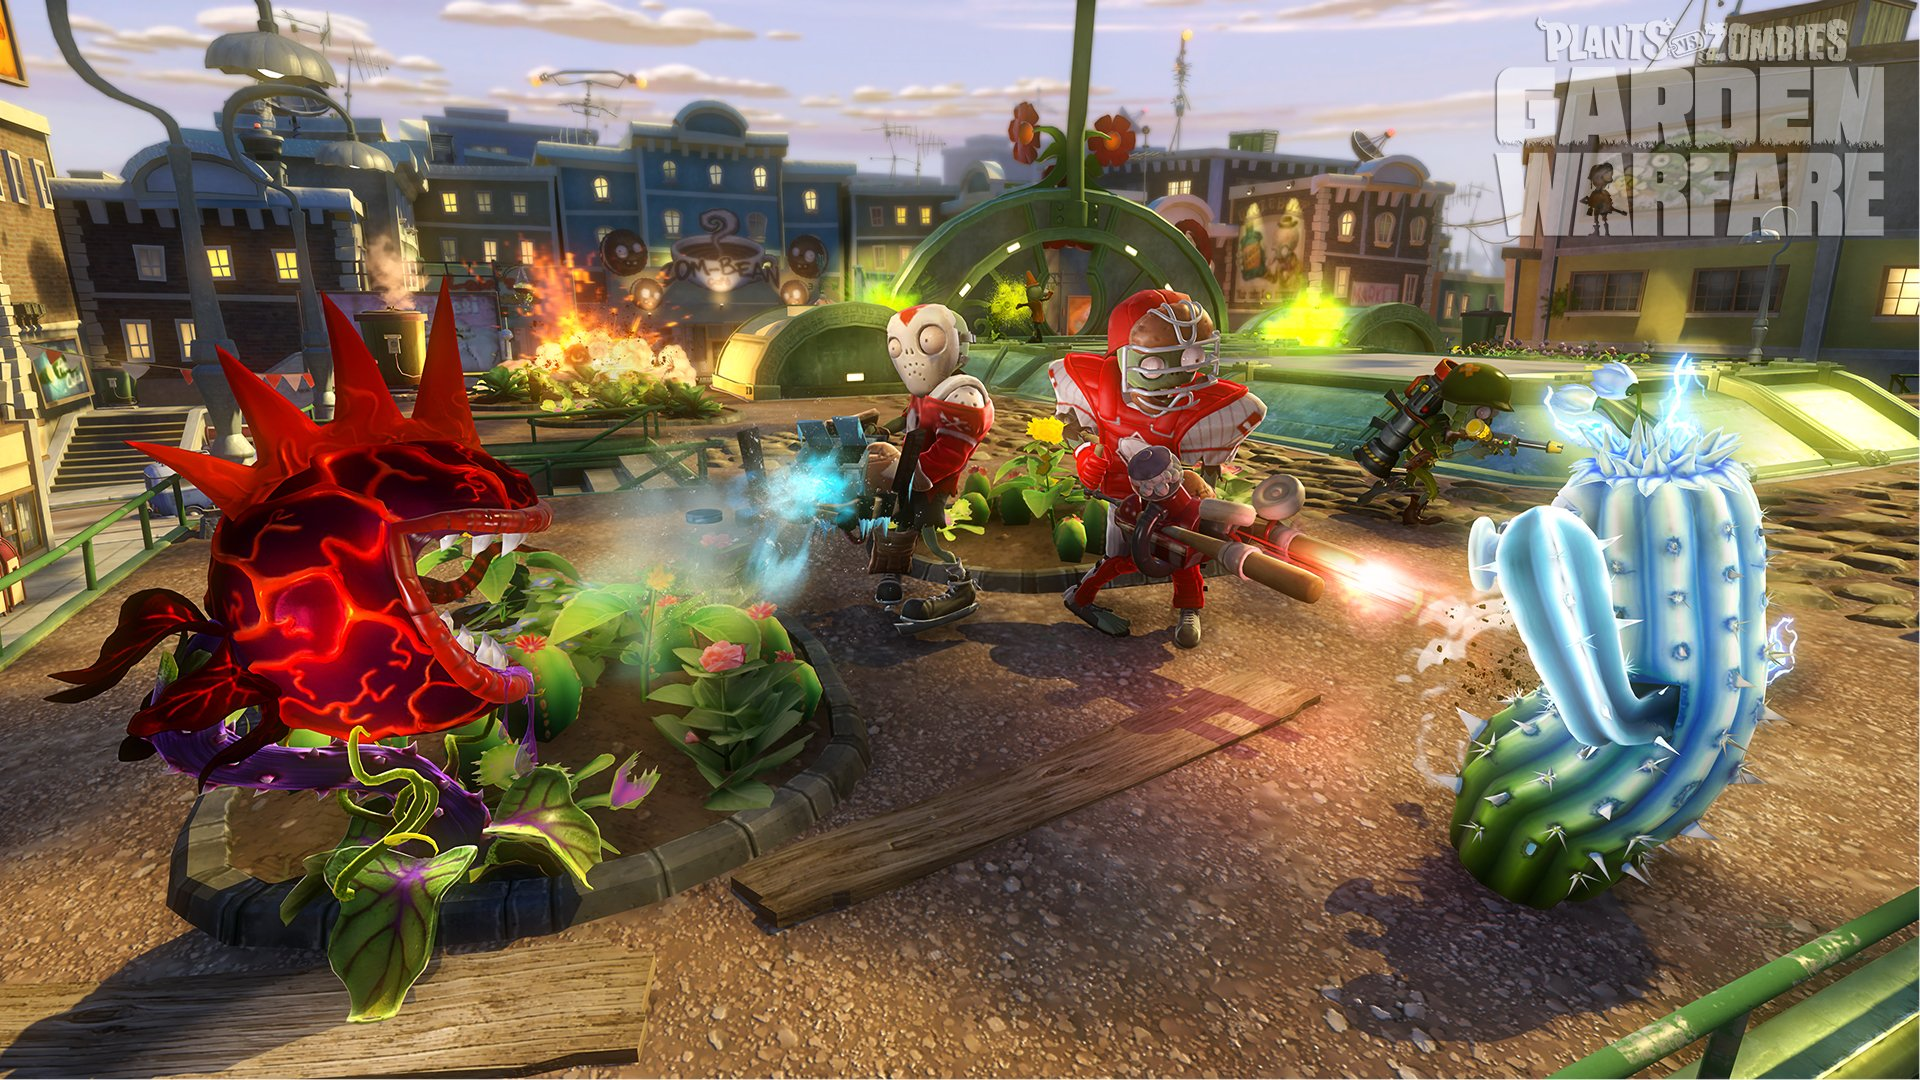 plants vs. zombies : garden warfare full hd wallpaper and background